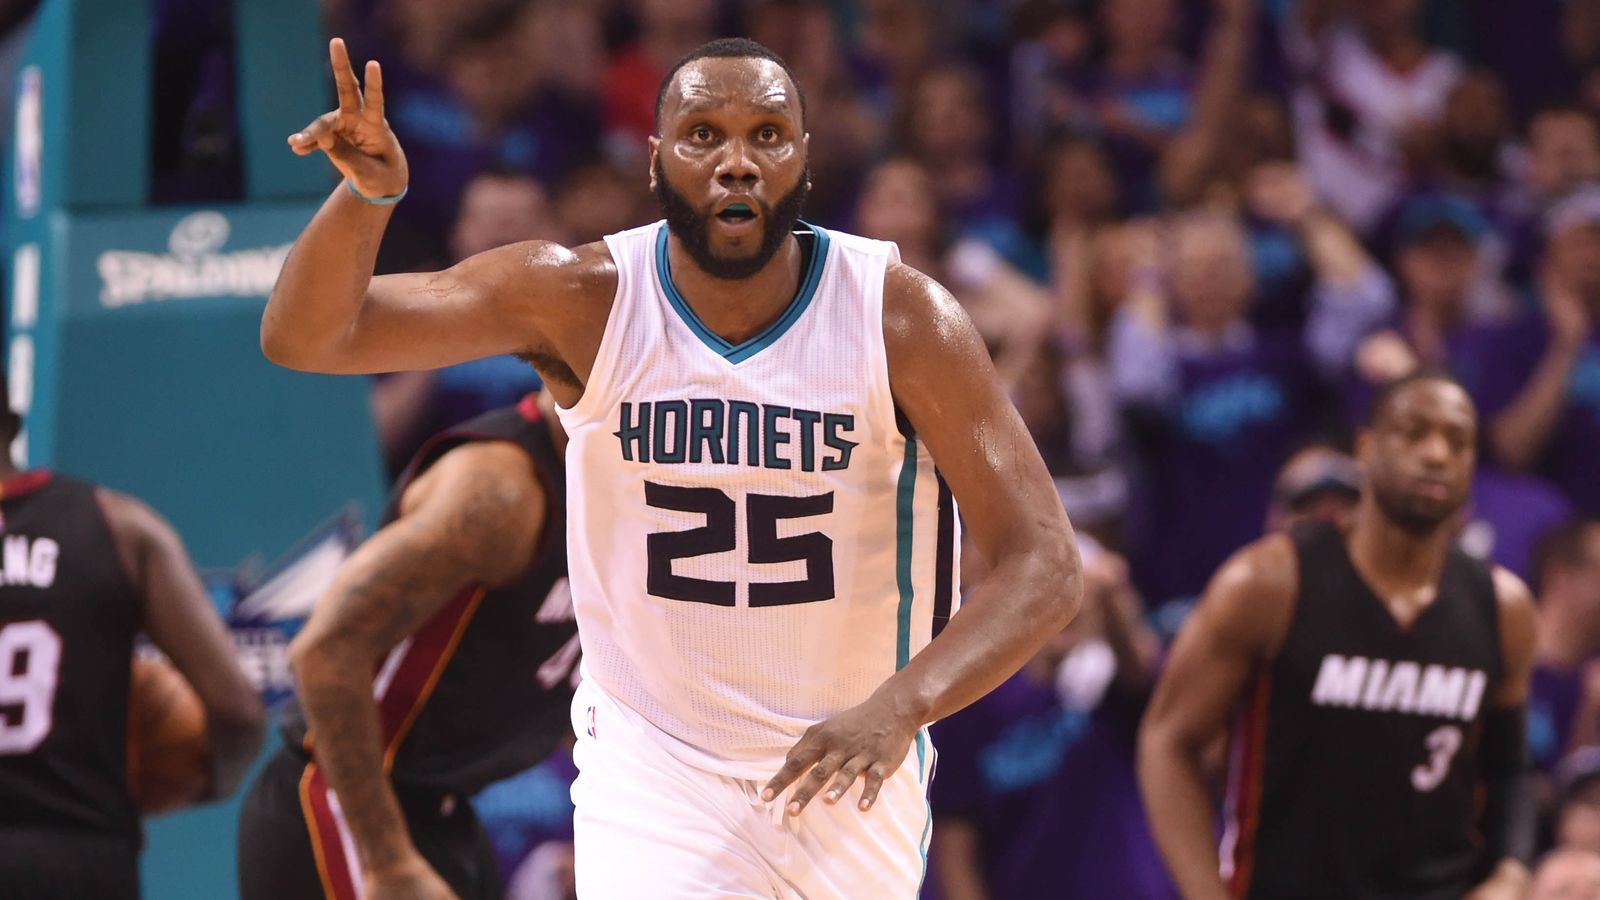 Al Jefferson agrees to $30 million deal with Pacers, per report